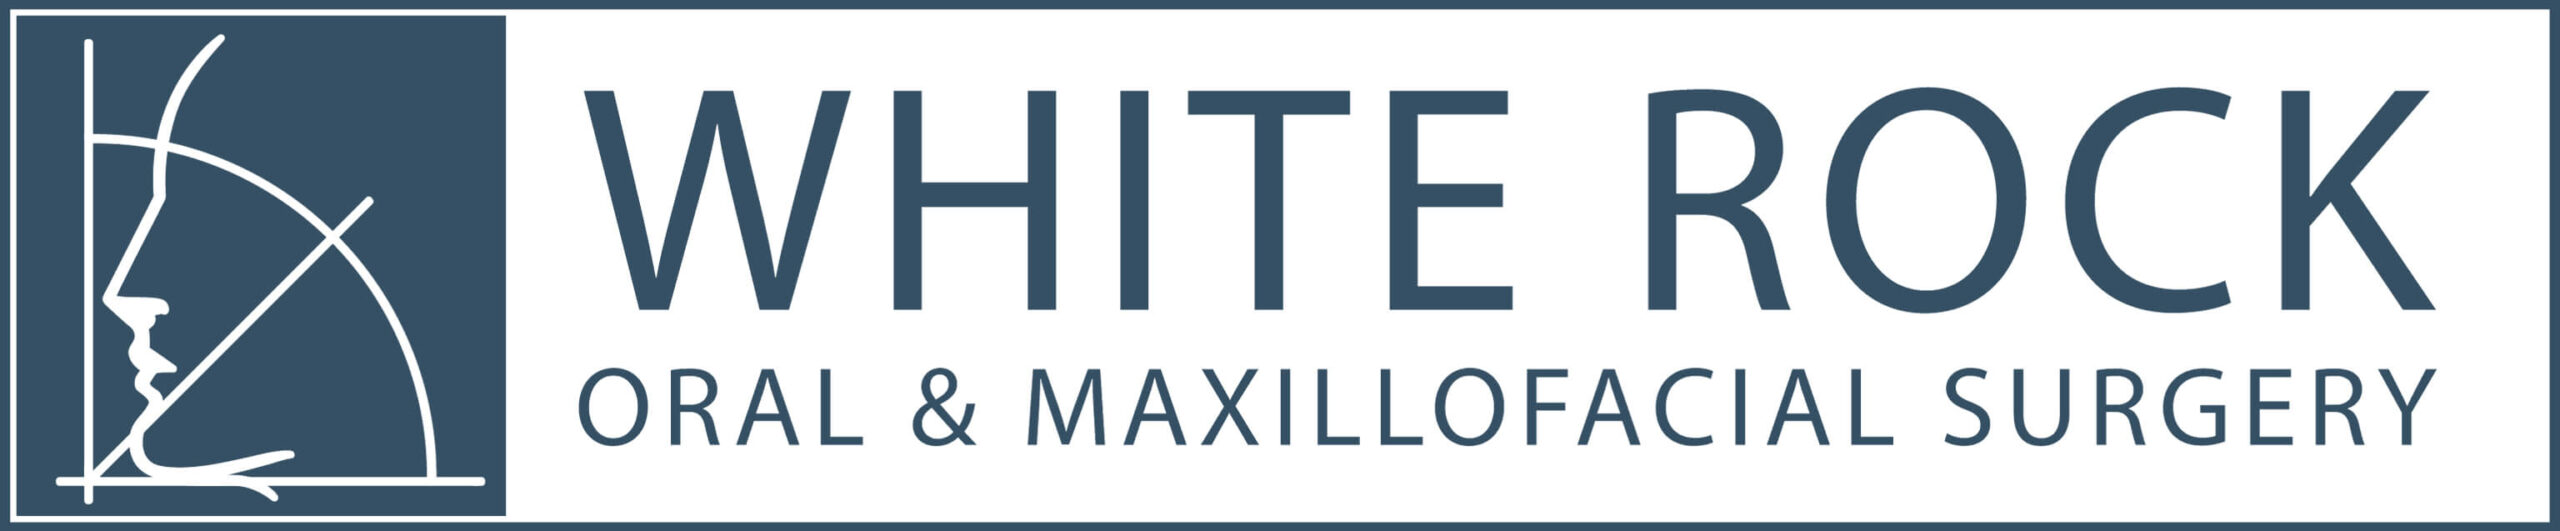 White Rock OMS logo